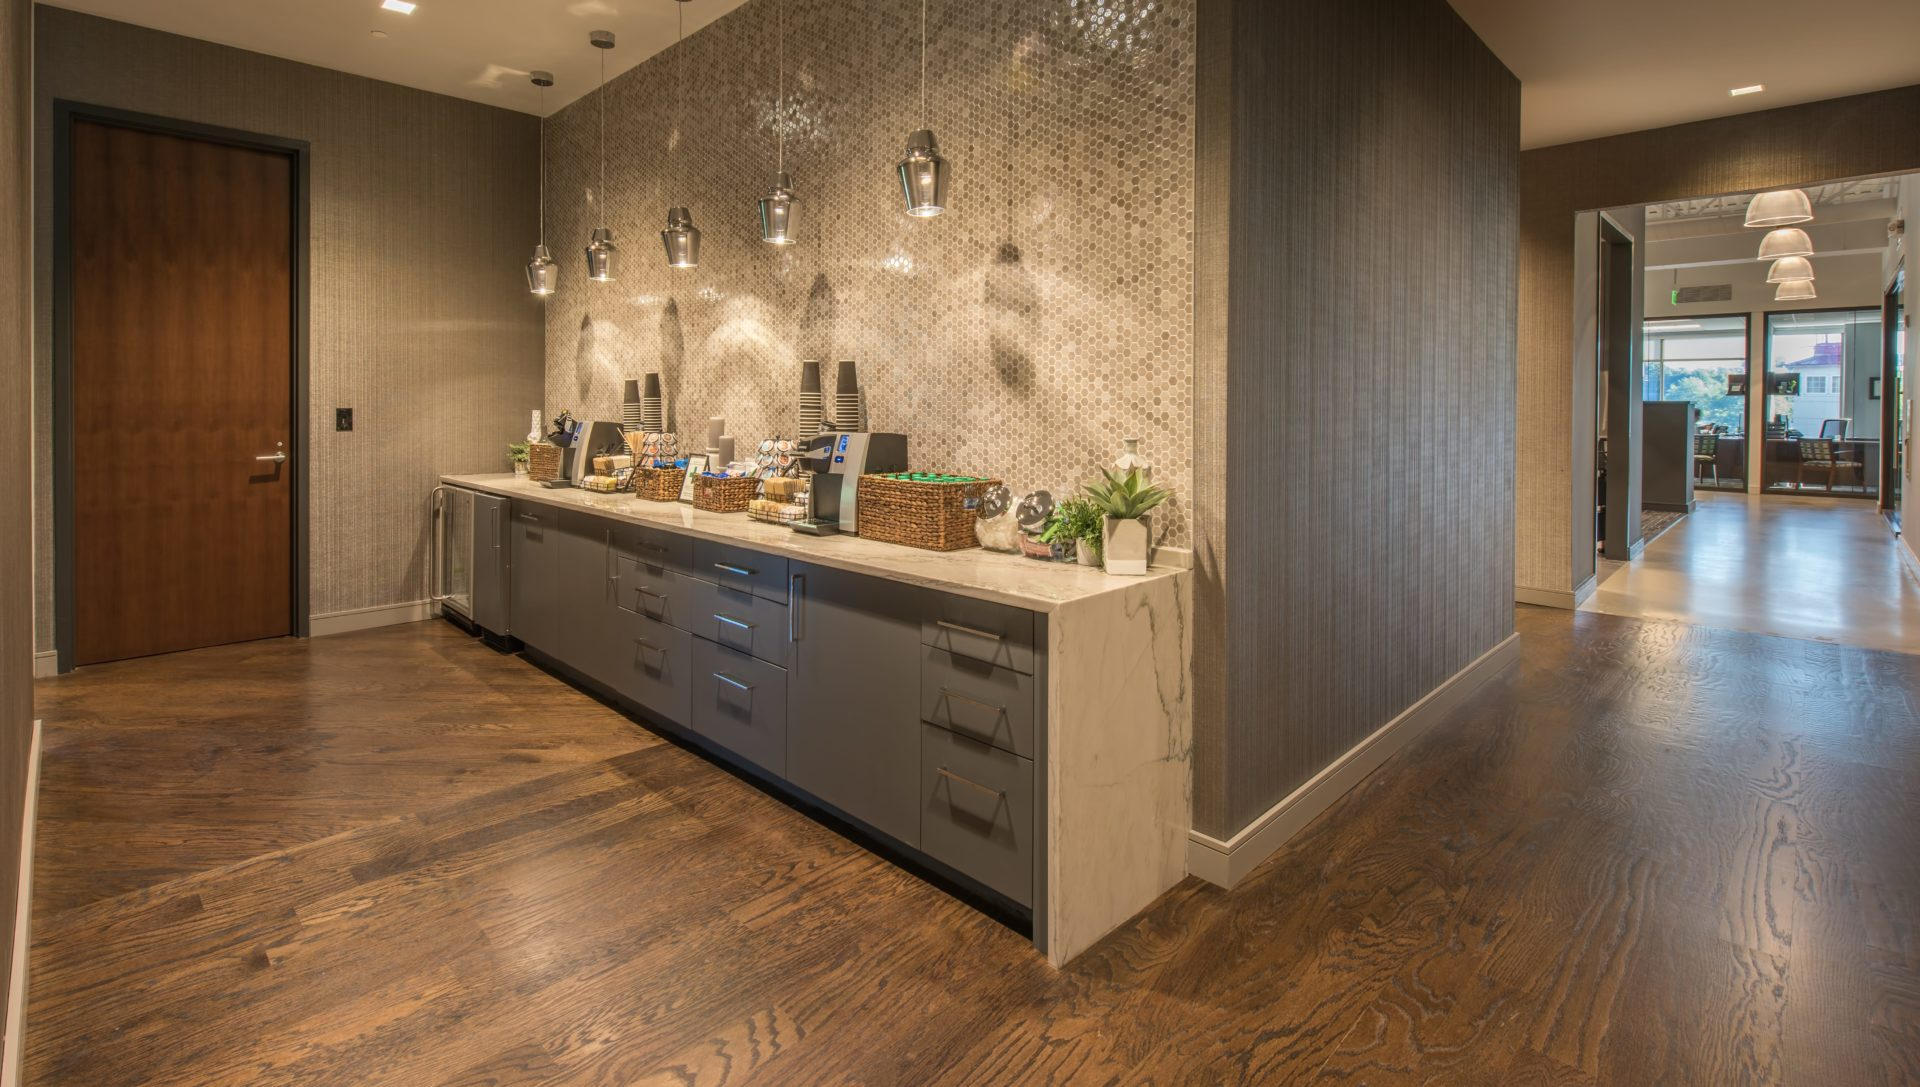 Dark Hardwoods with Moasic Tile Accent at Reeves Young